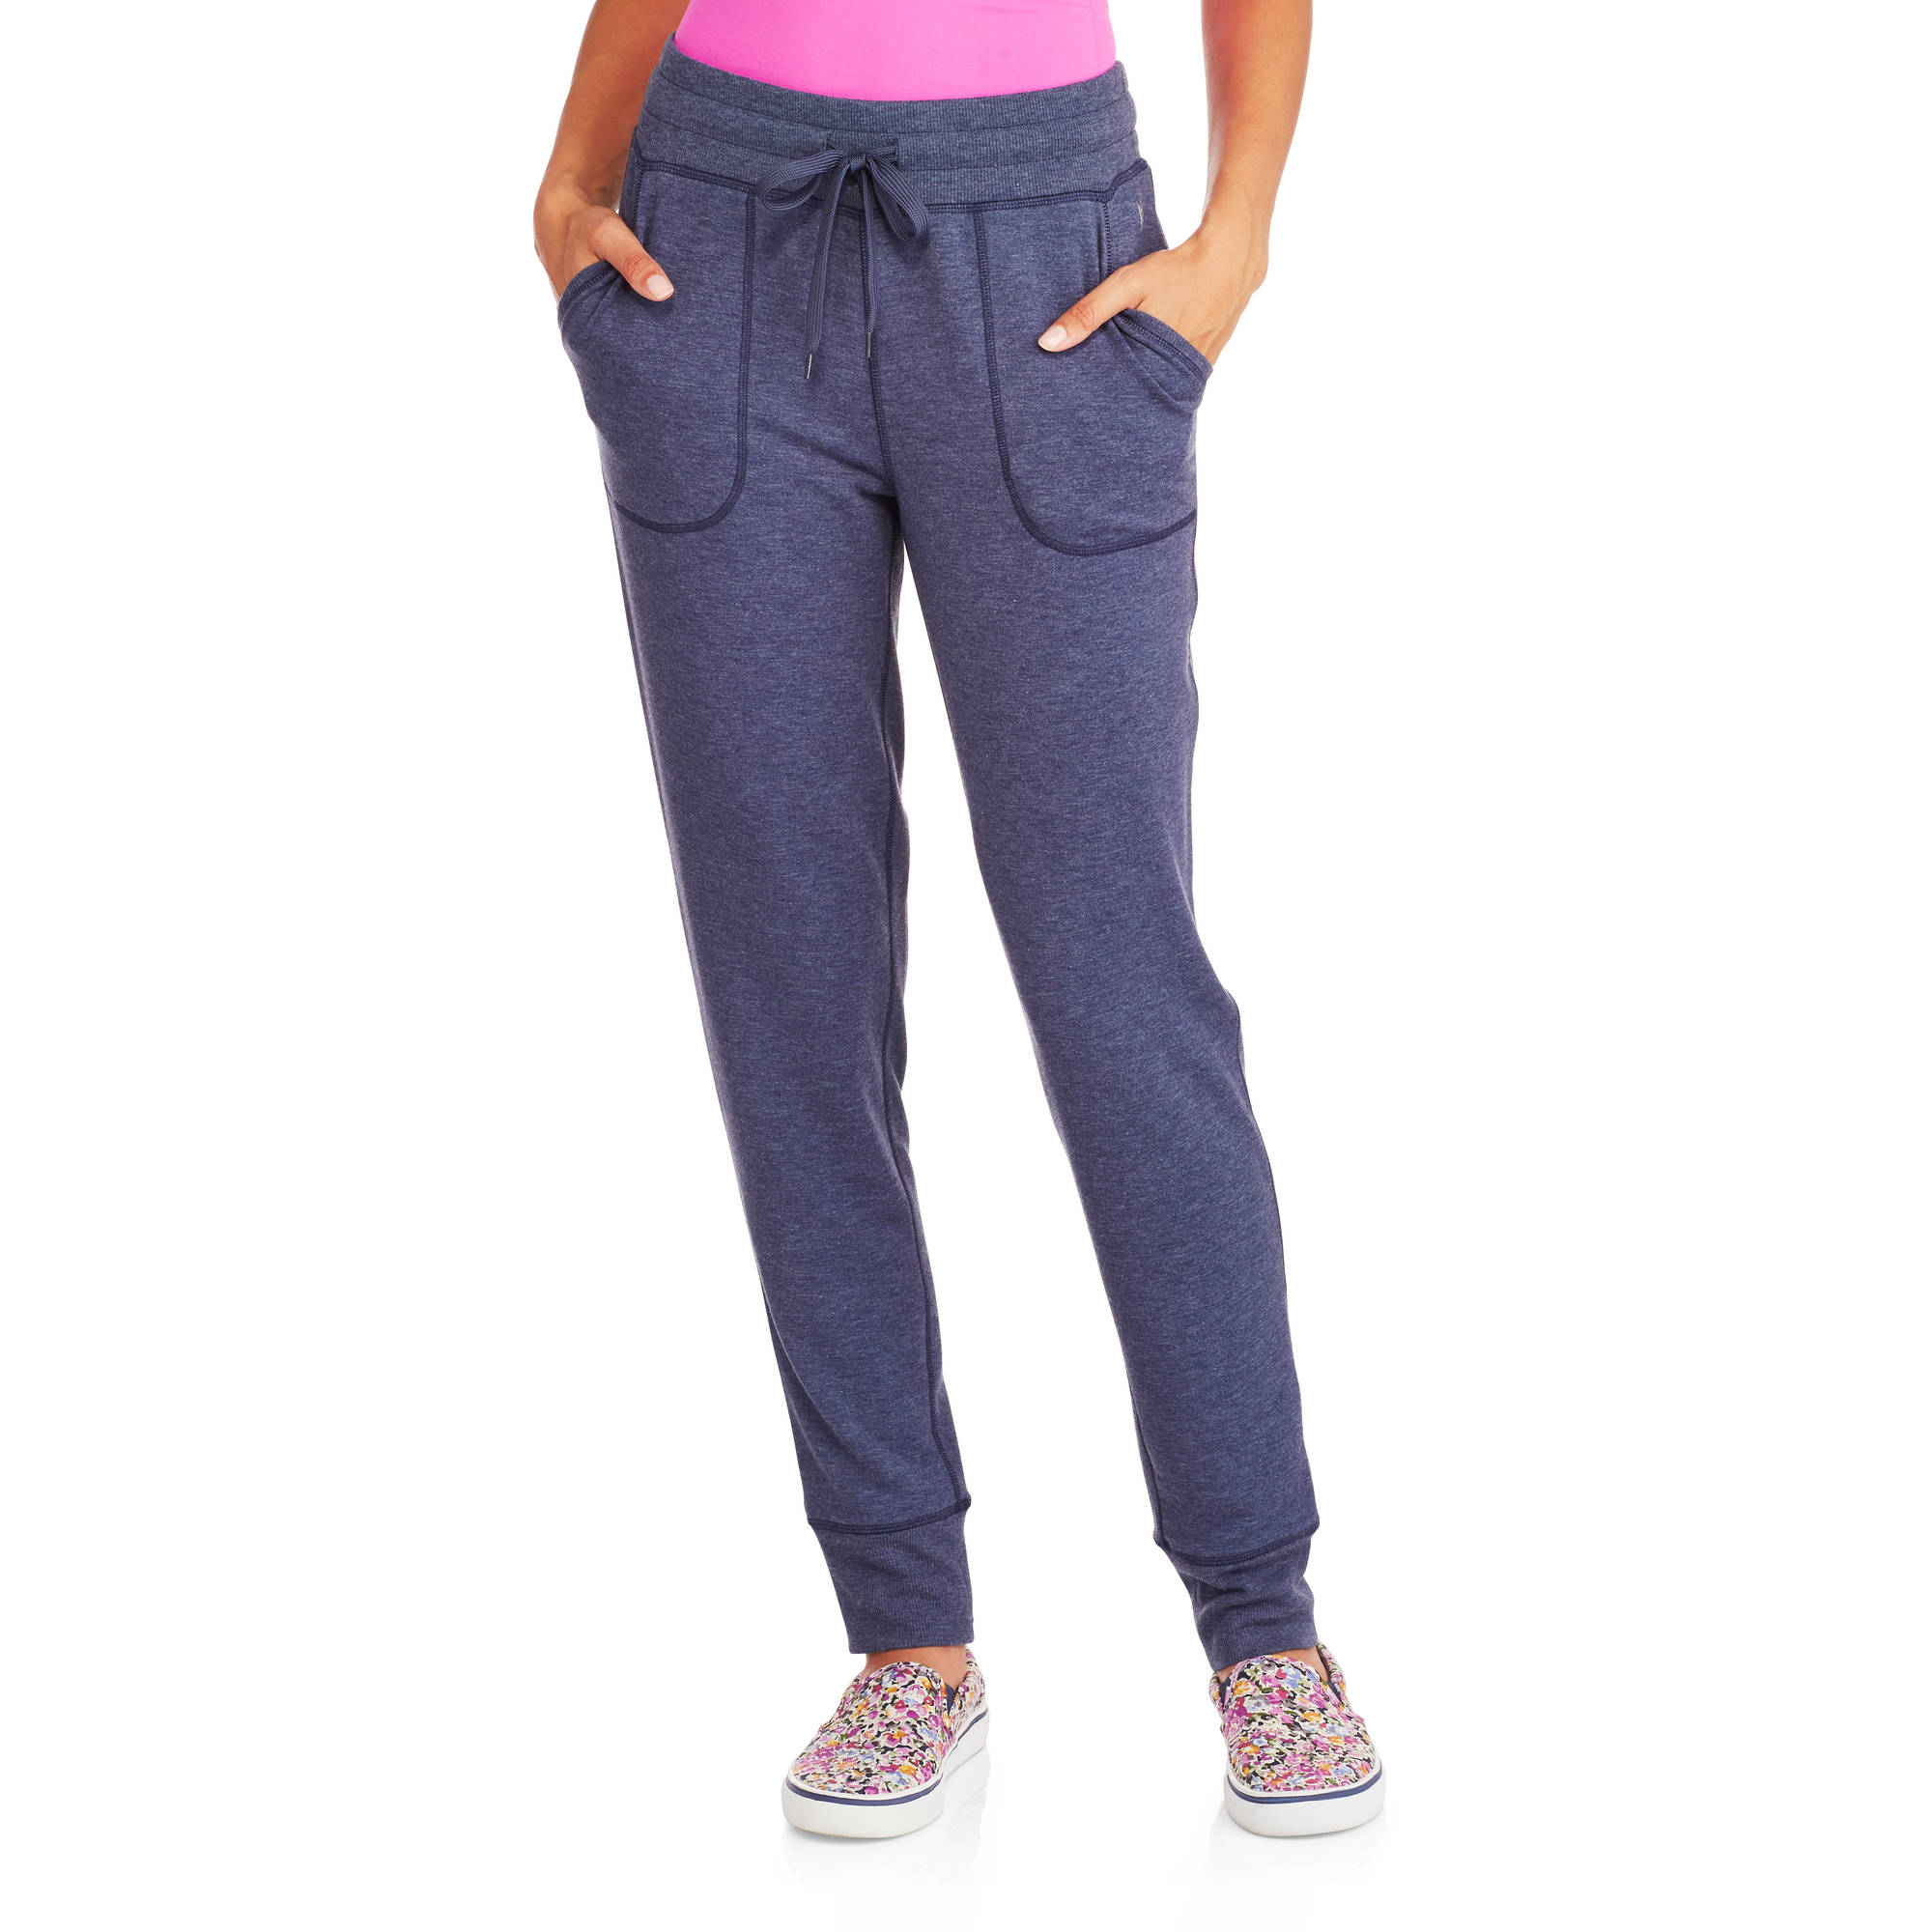 Danskin Now Women's Core Lounge Jogger with Front Pockets